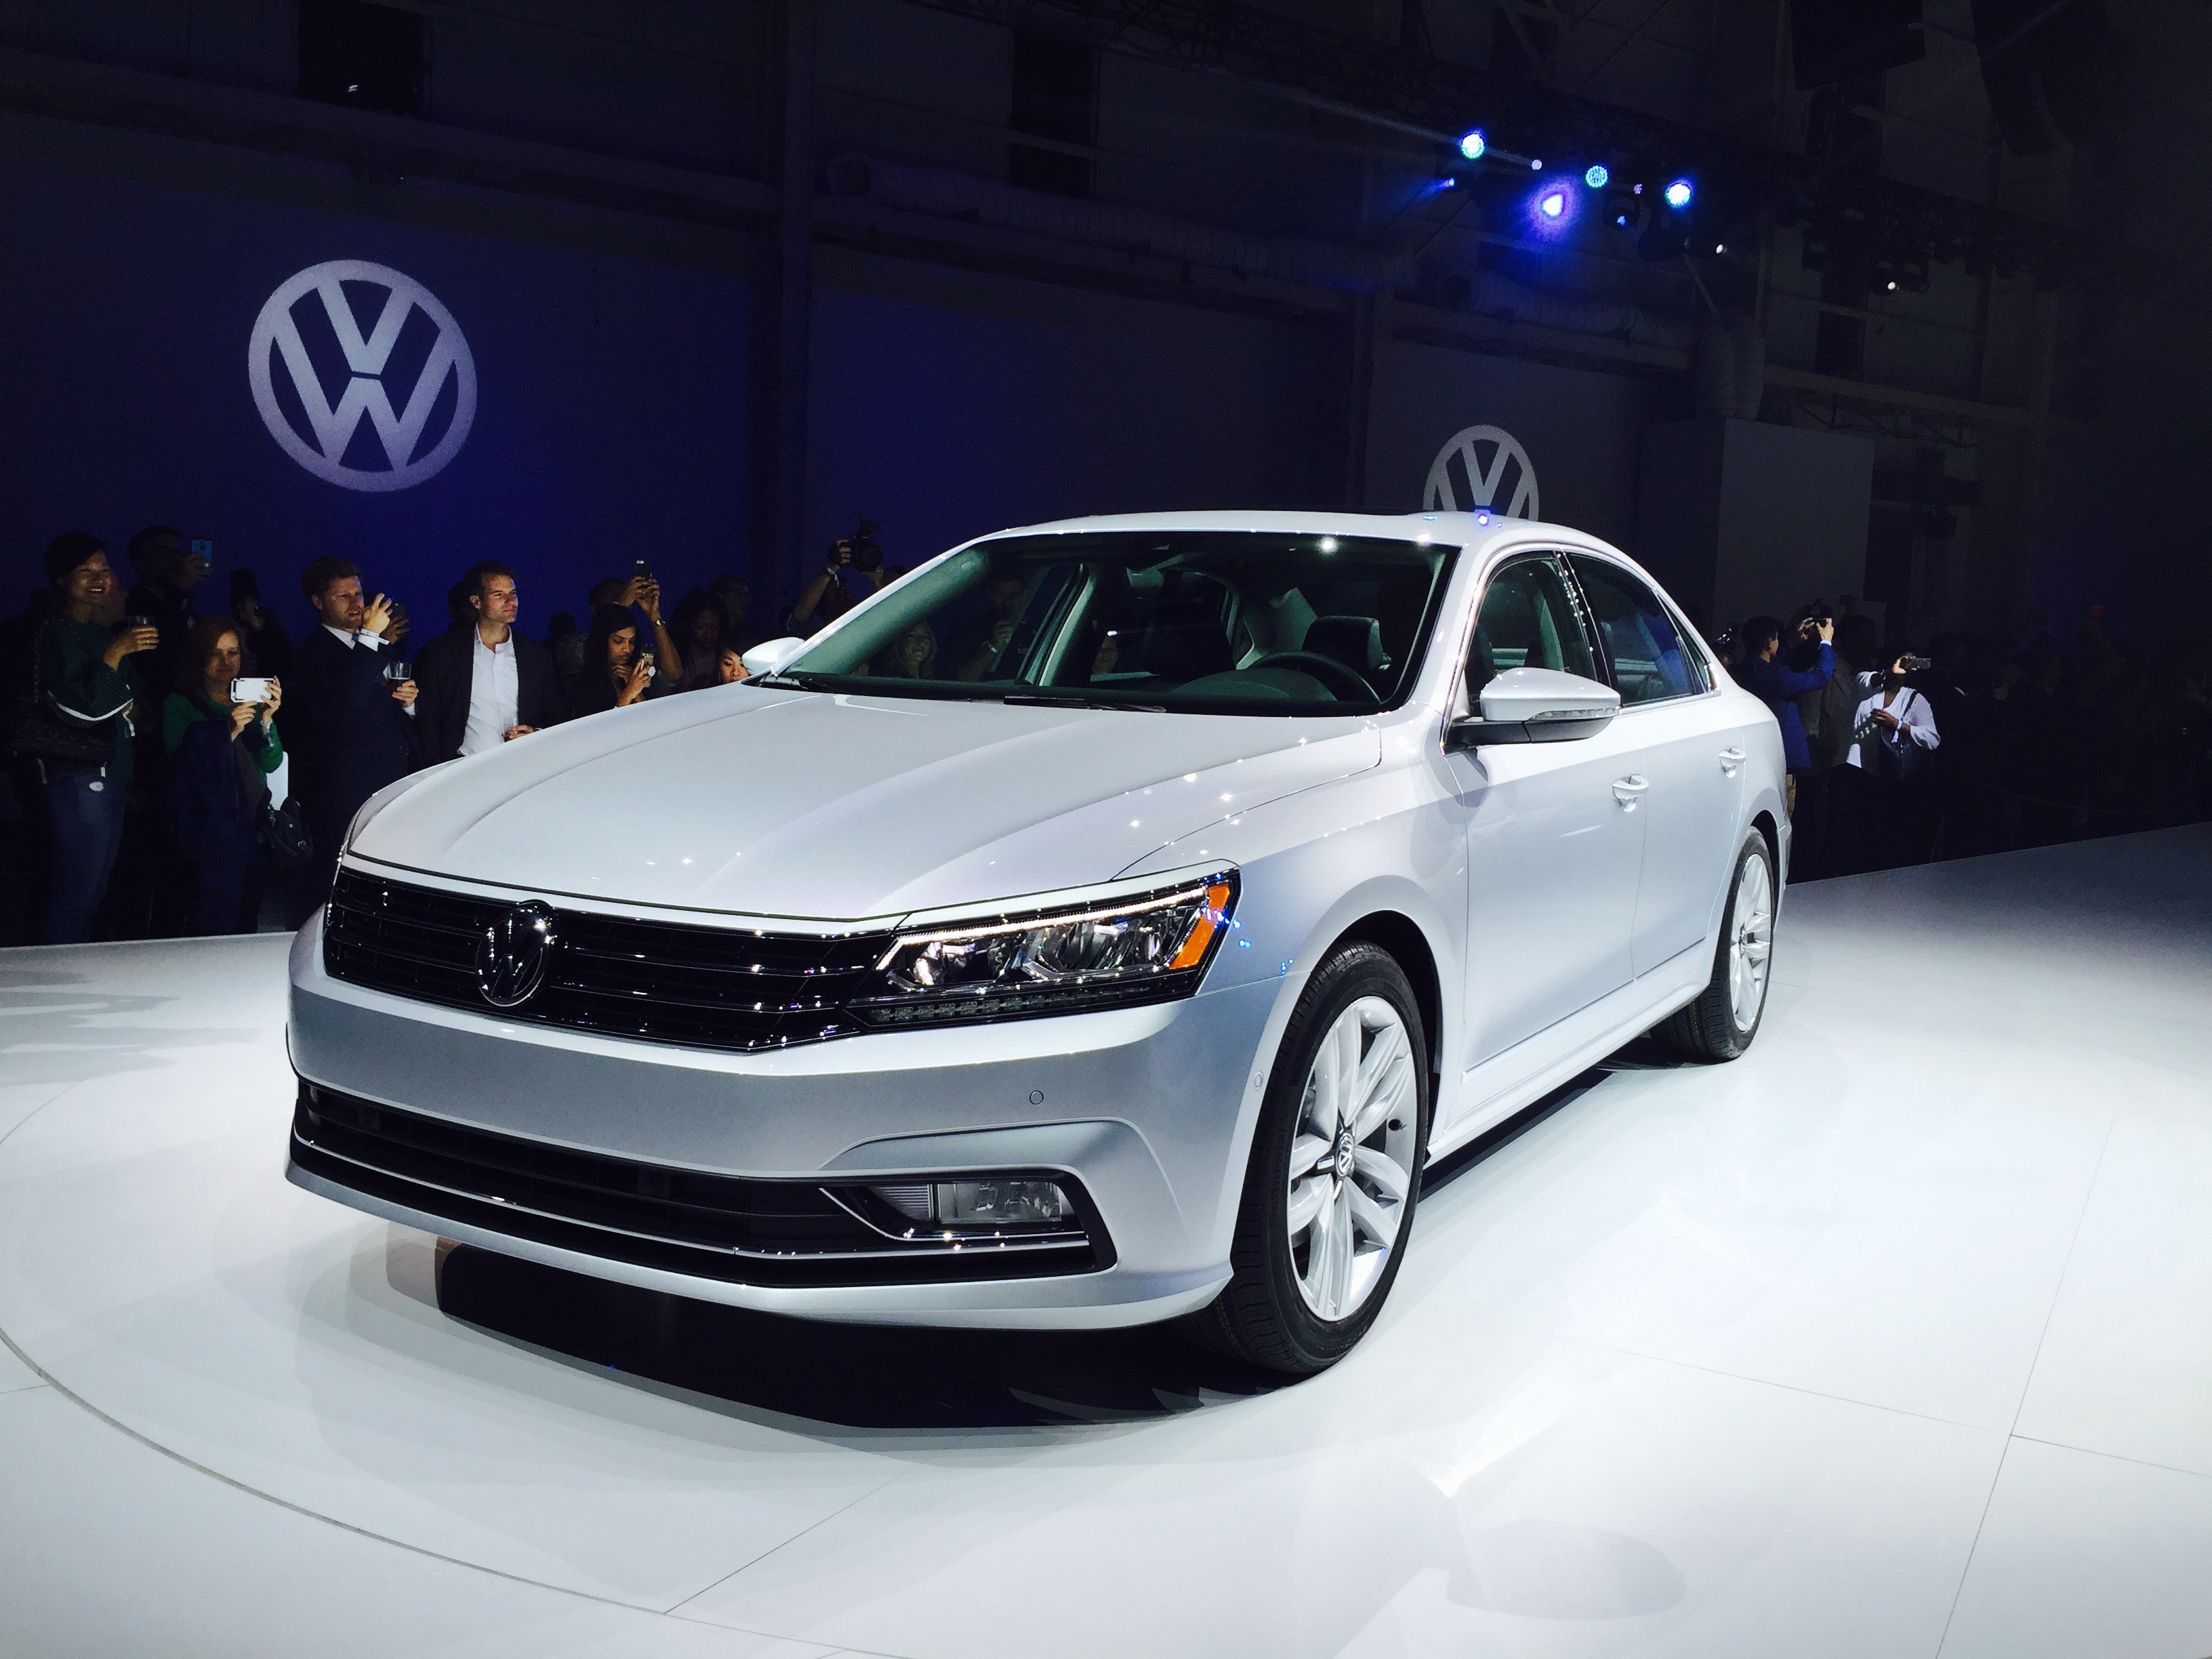 how to tell if a vw has driver assistance package